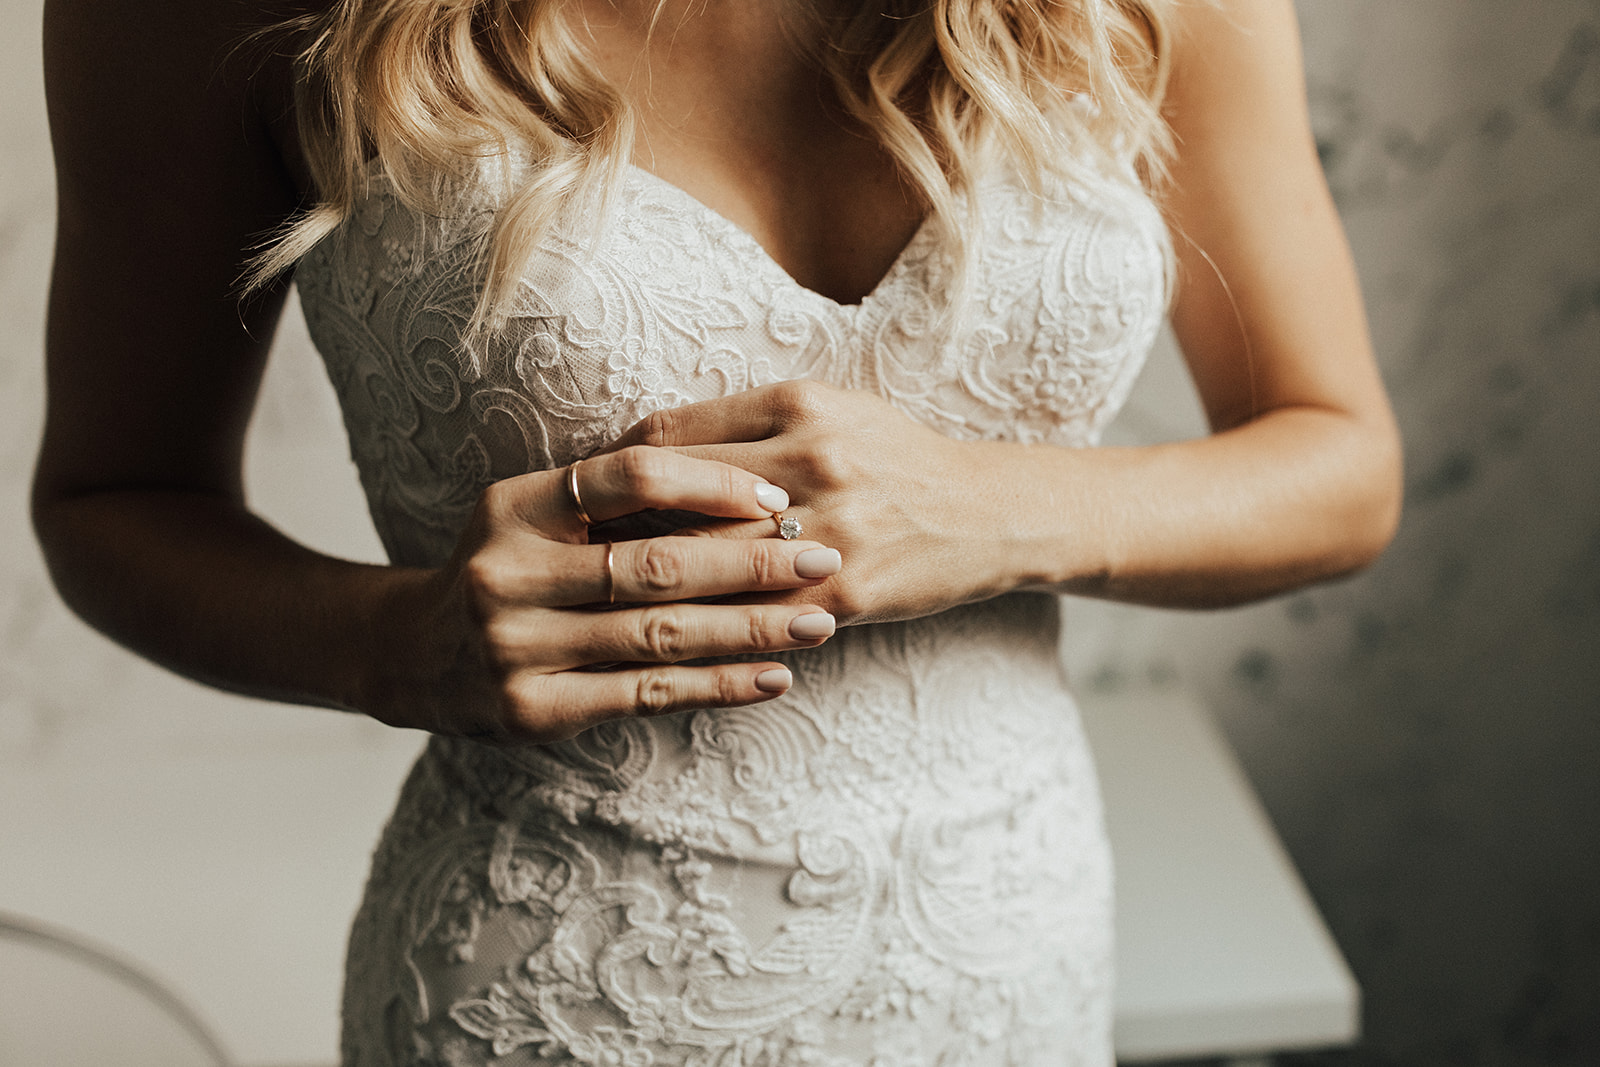 Sweetheart wedding dress details by Lauren Nicole